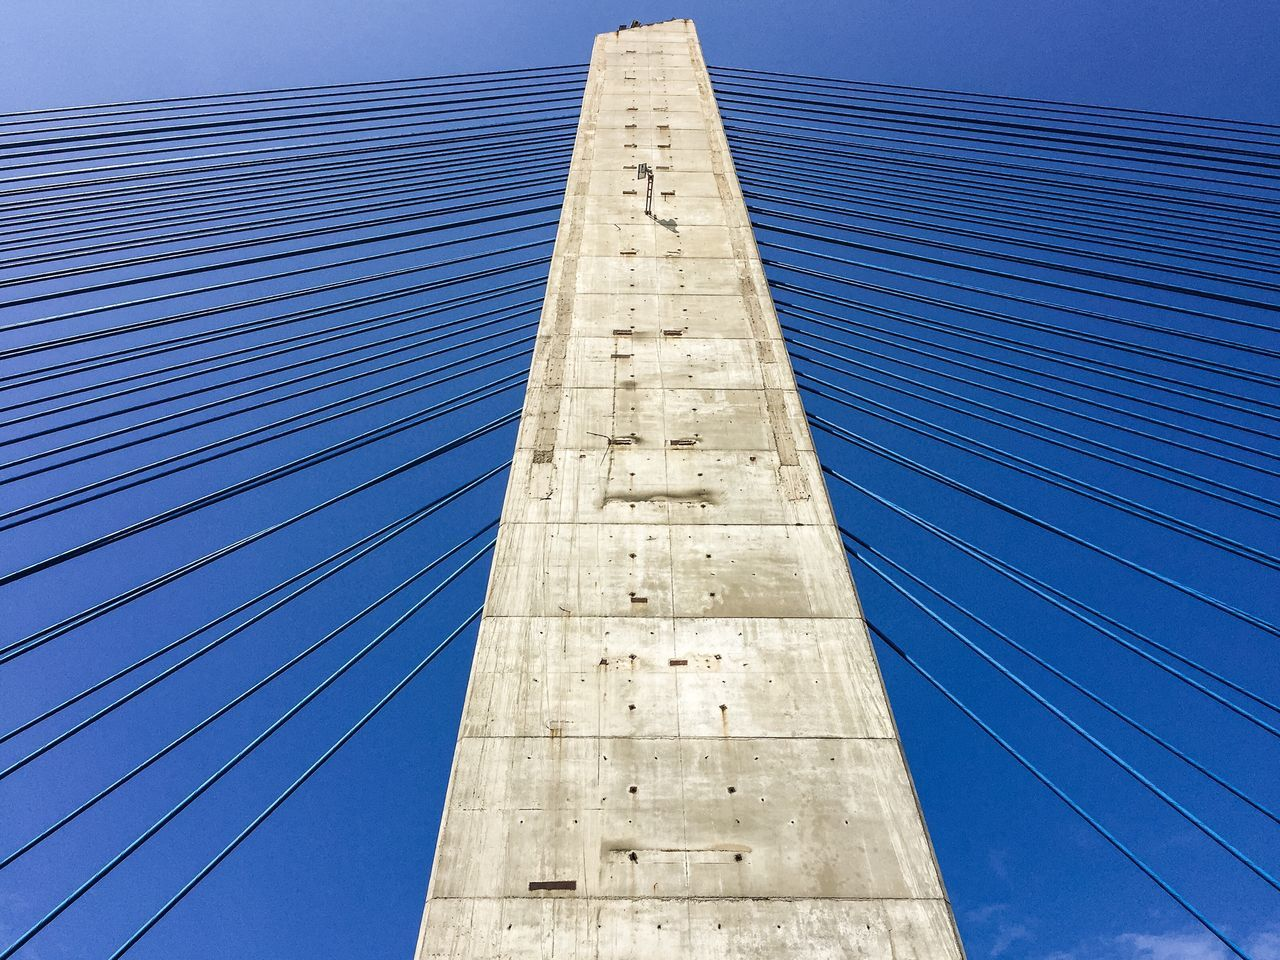 Lines Architecture Built Structure Low Angle View Building Exterior City No People Skyscraper Modern Outdoors Tall Day Sky Bridge Bridge - Man Made Structure Suspension Bridge Suspension BEIJING北京CHINA中国BEAUTY Zhuhai